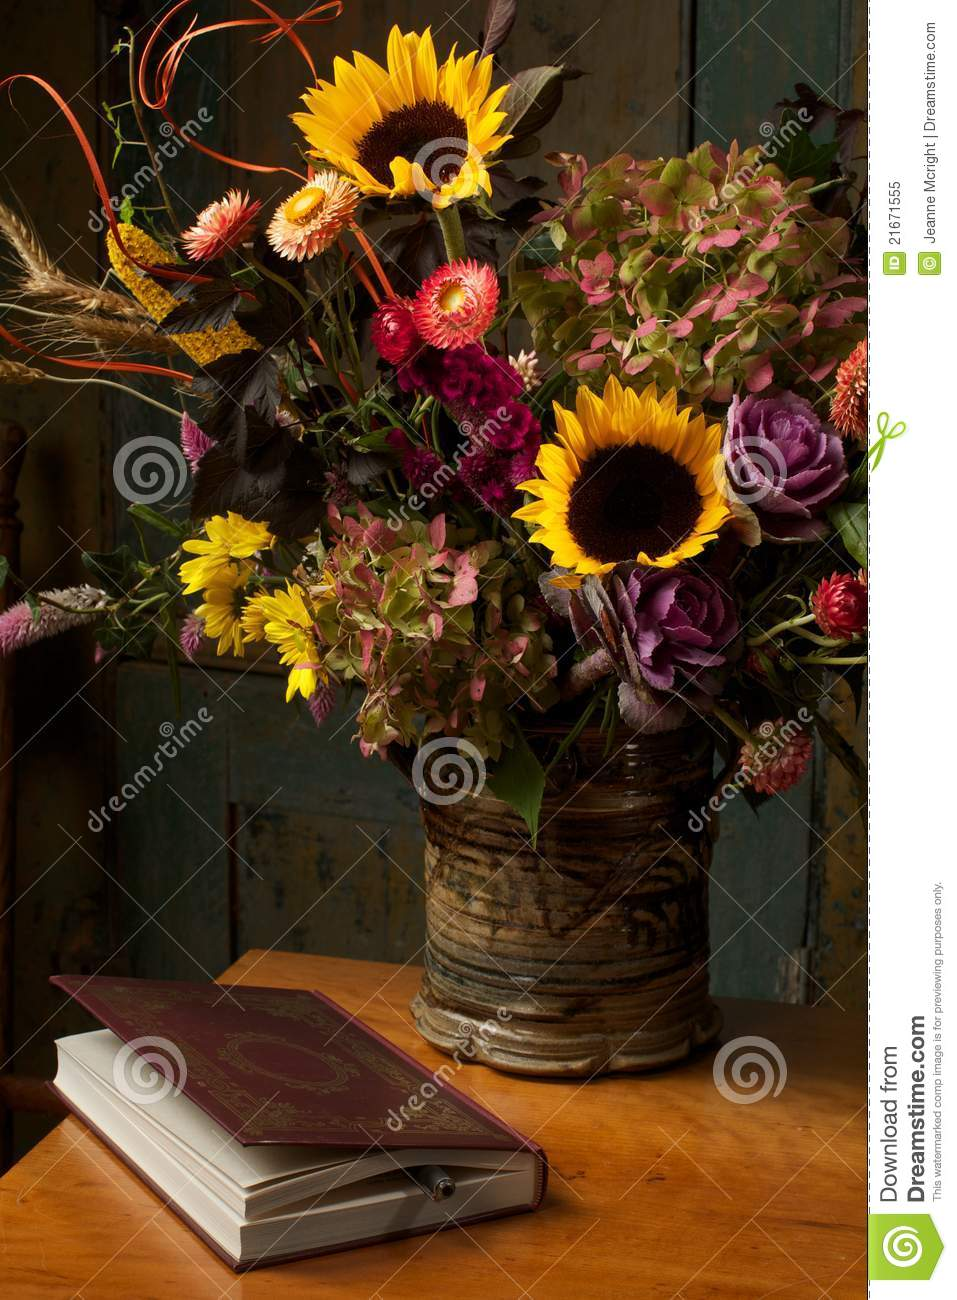 Rustic Still Life With Autumn Flowers And Book Stock Image